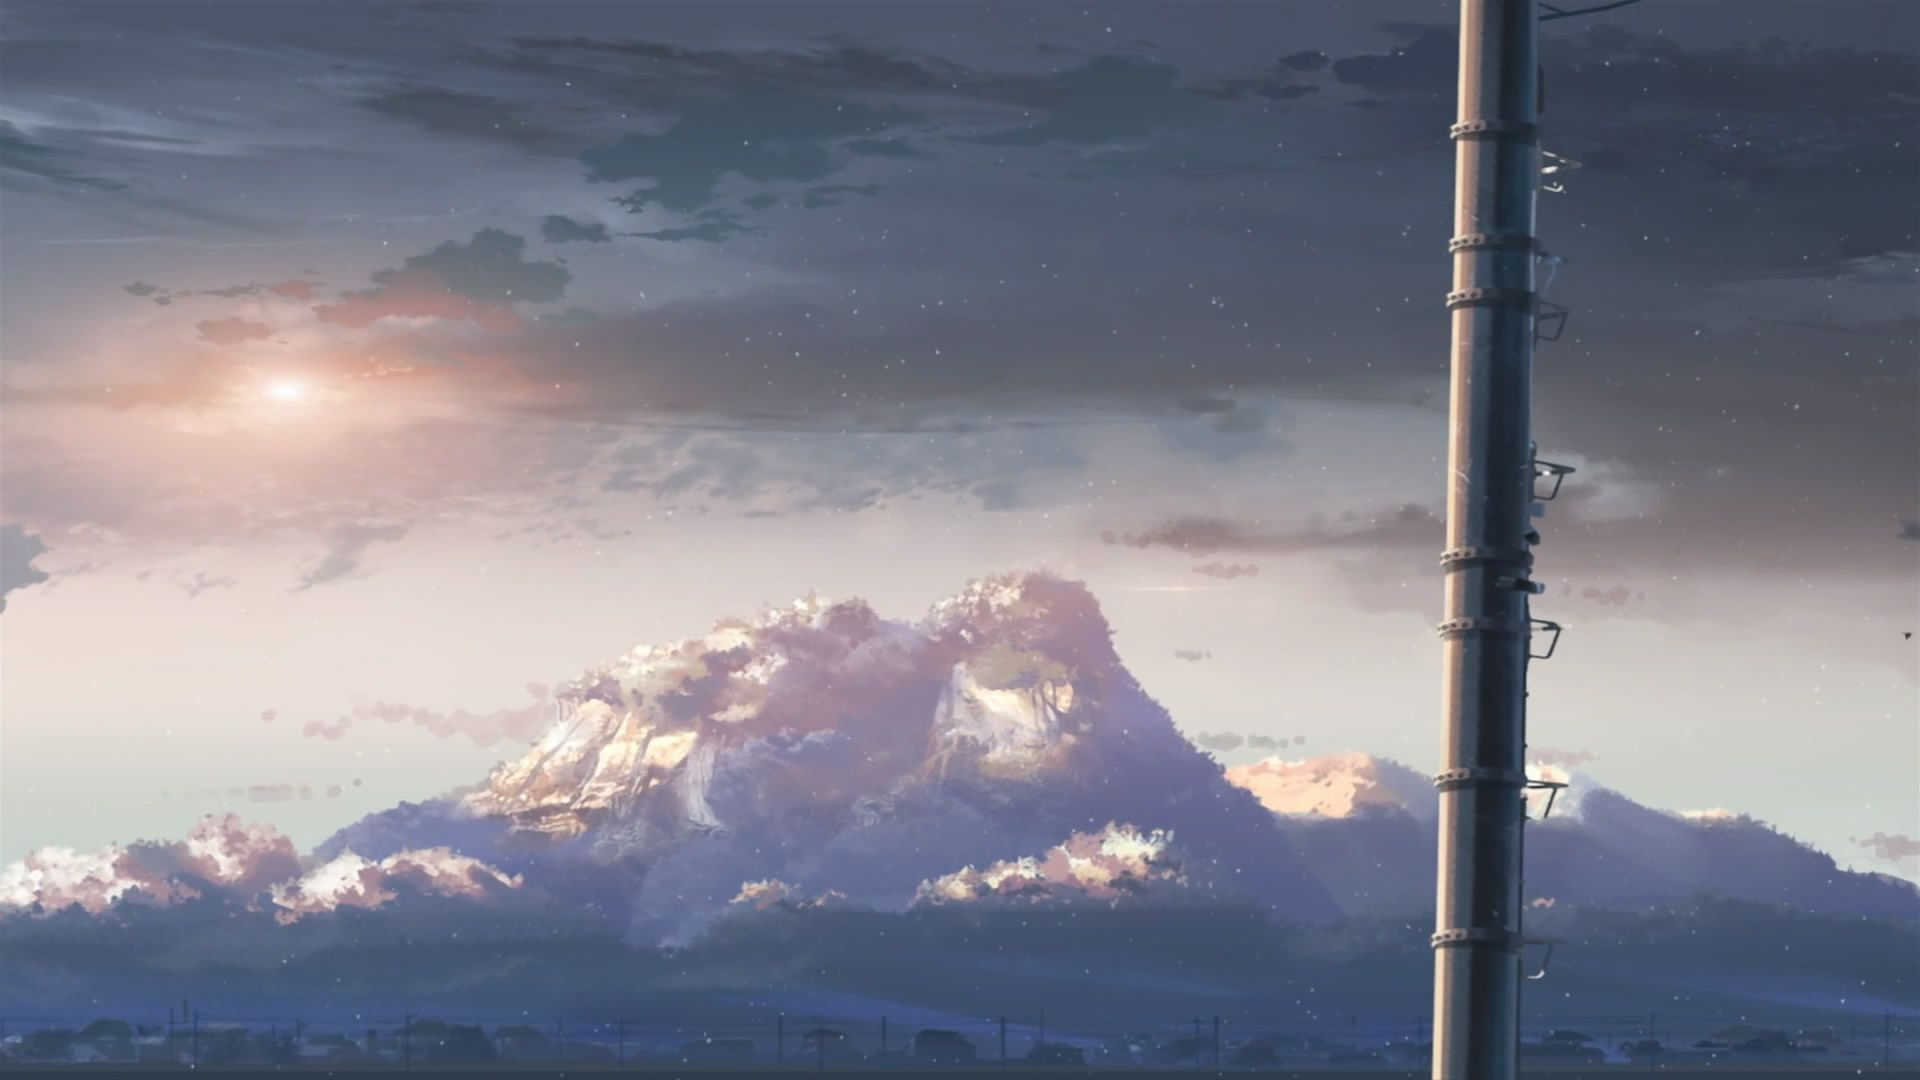 Anime background, Makoto shinkai movies